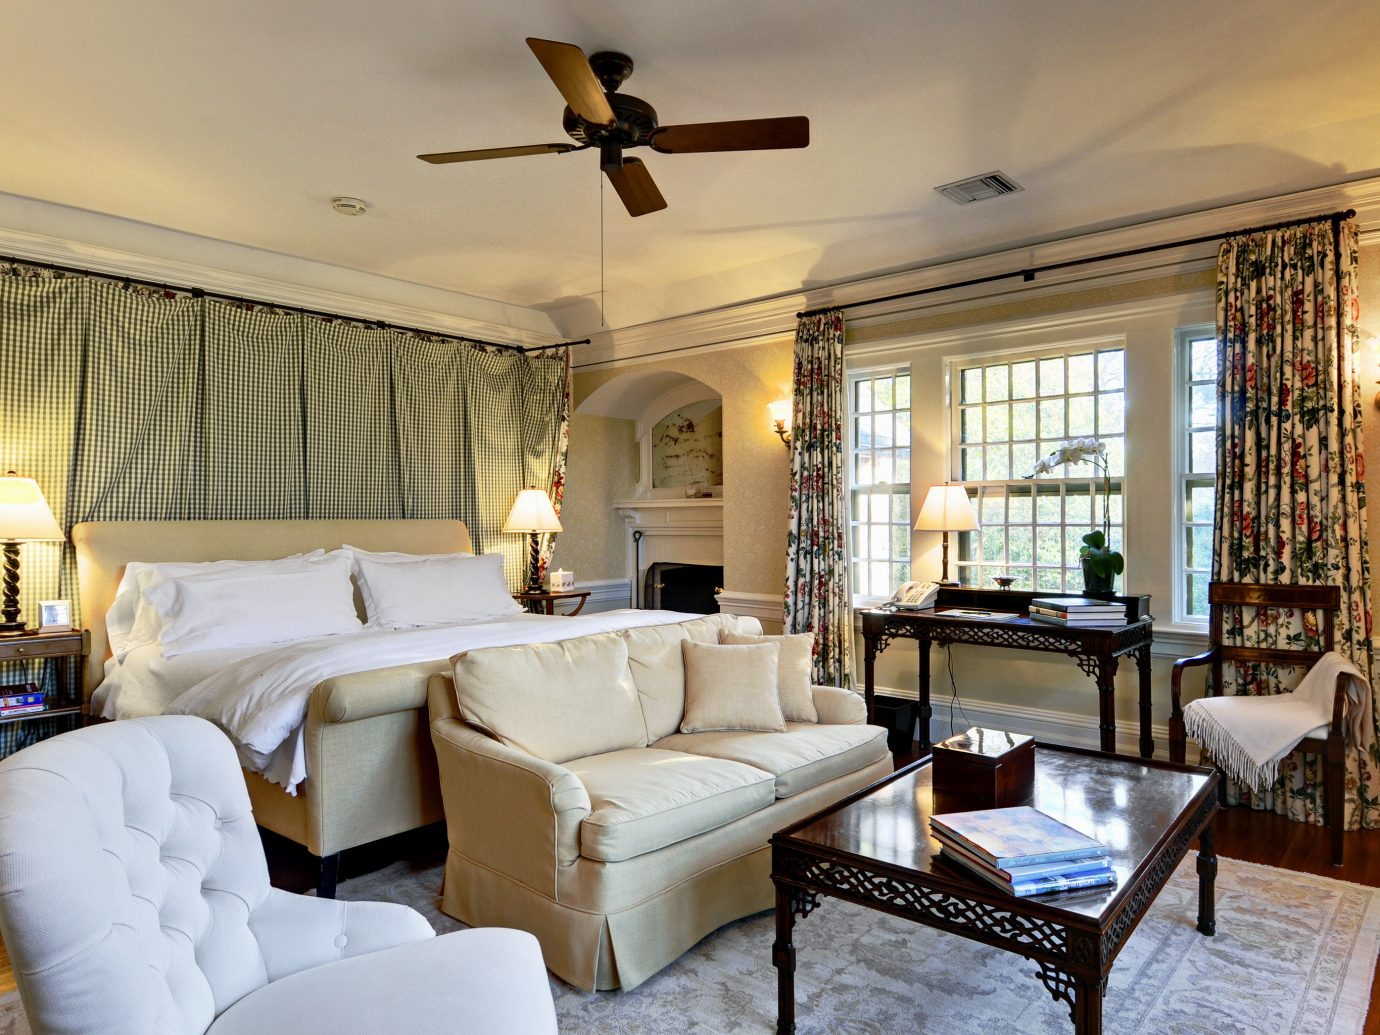 B&B Beach Bedroom Elegant Historic Inn Romantic South Fork The Hamptons Wellness indoor room floor Living sofa window living room property estate ceiling home furniture interior design real estate Villa cottage condominium mansion Suite Design farmhouse decorated several